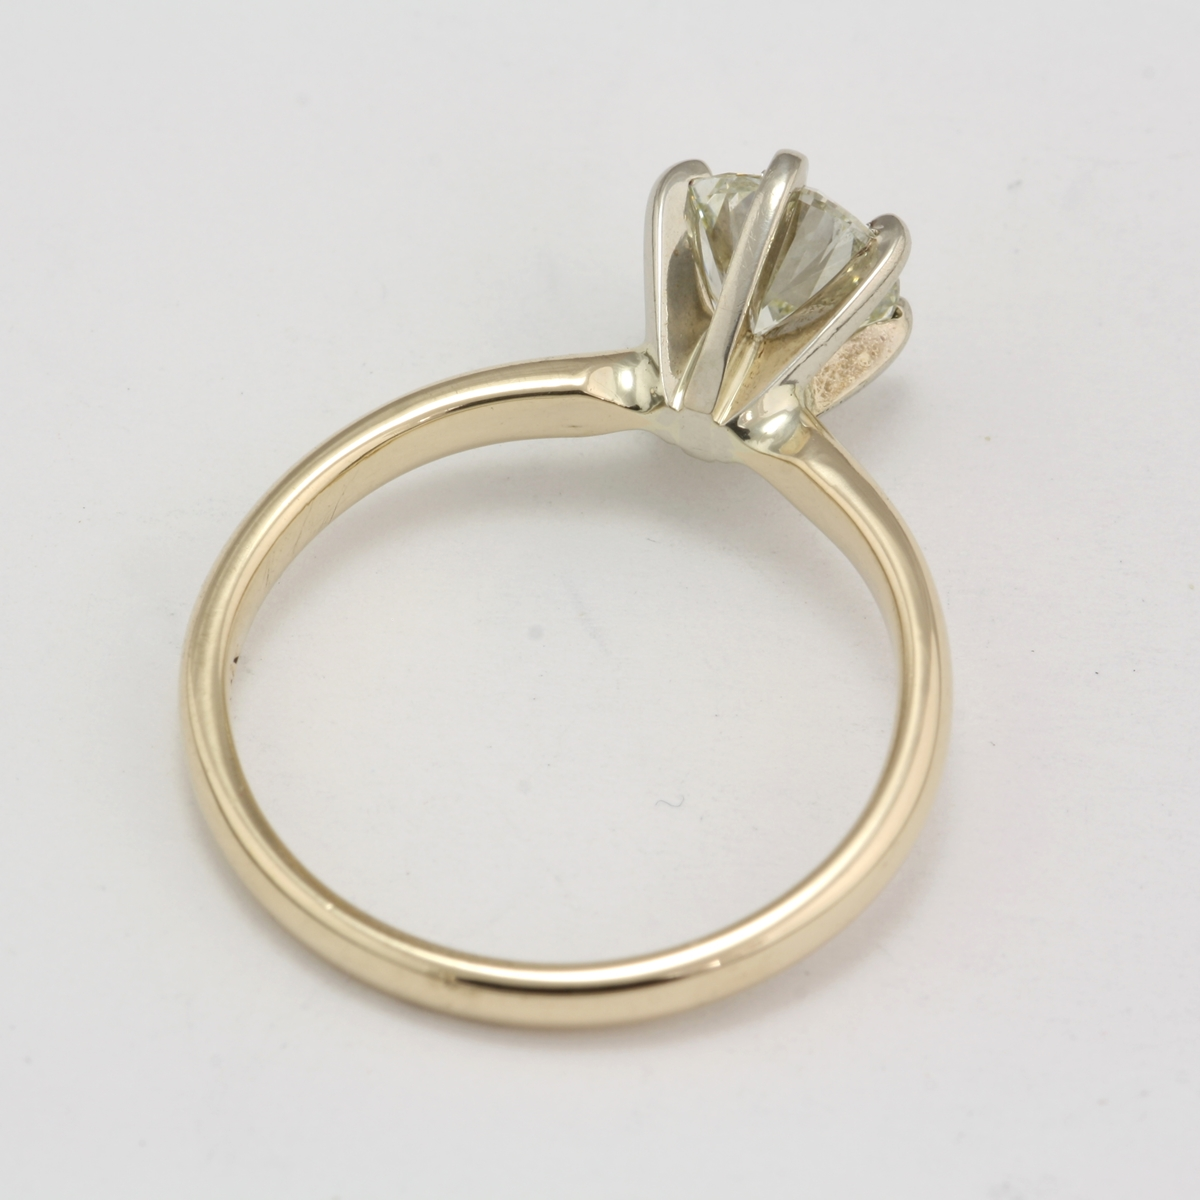 Preowned 14 Karat Yellow Gold Diamond Solitaire Ring